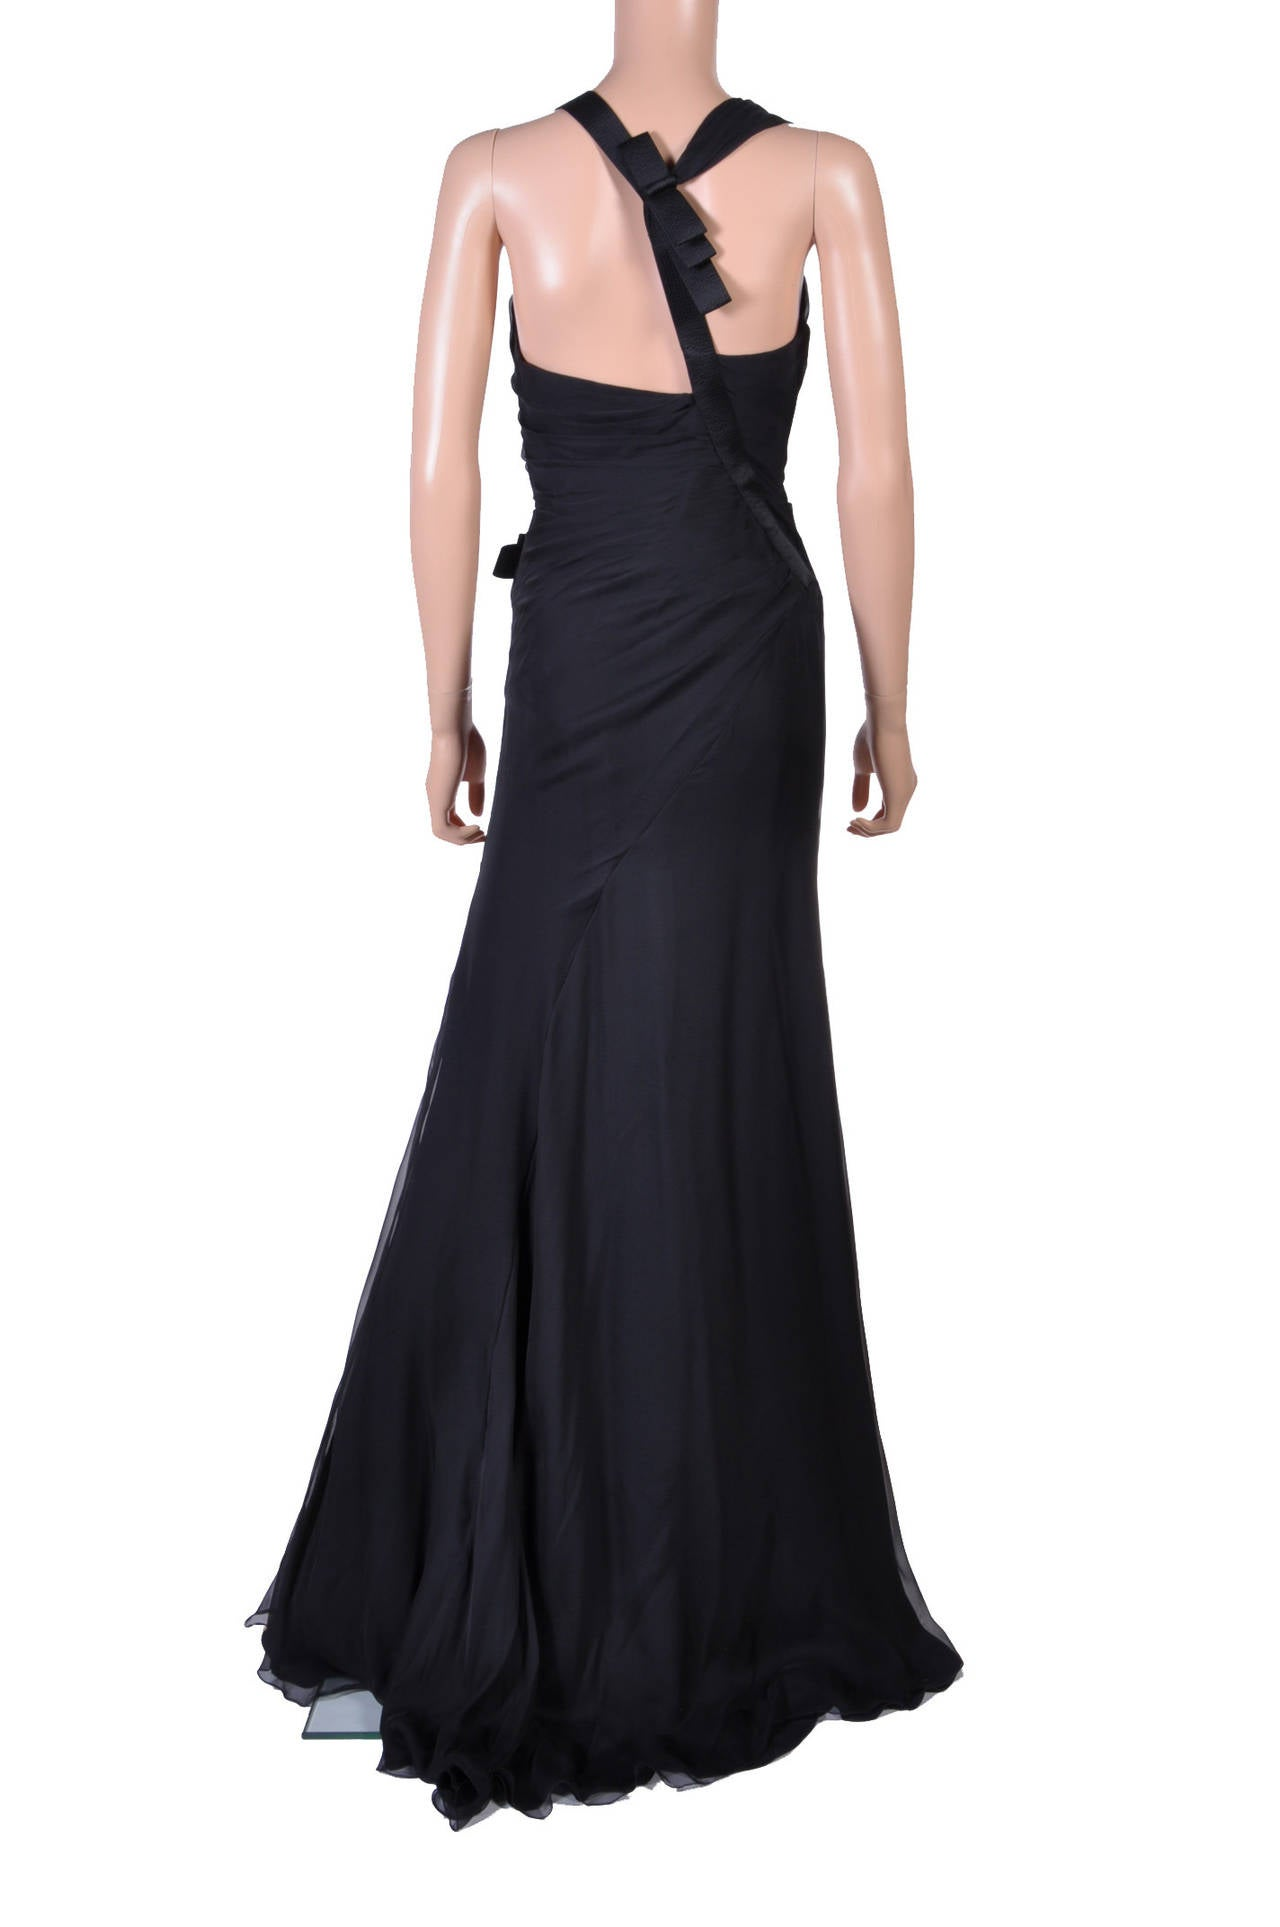 New VERSACE Black Chiffon Silk Gown 5